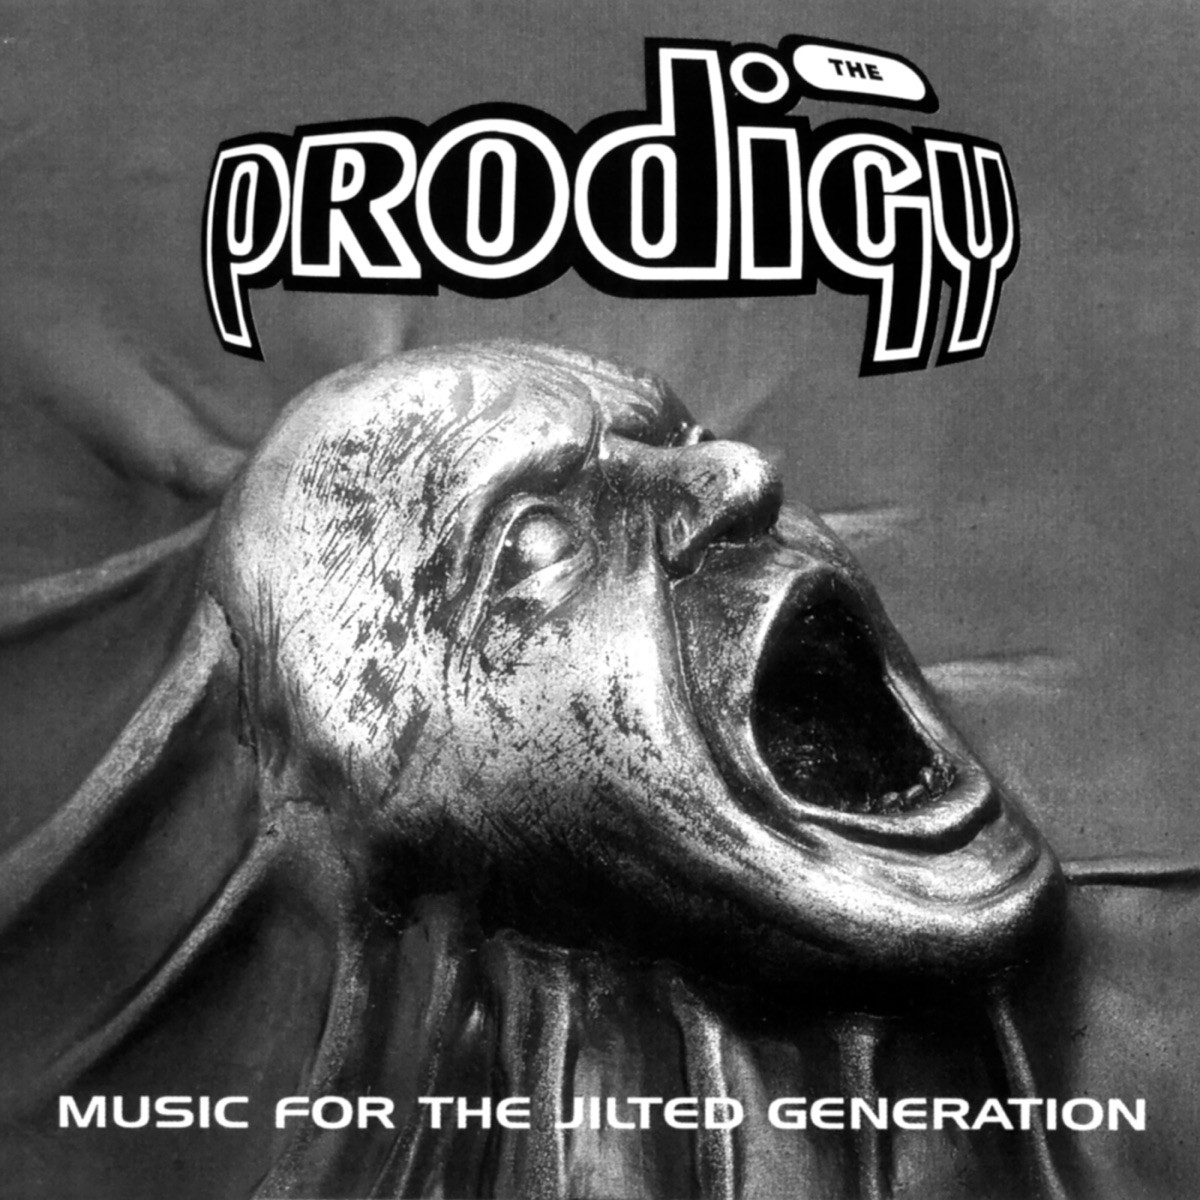 The Prodigy - Music for the Jilted Generation VINYL - XLLP114